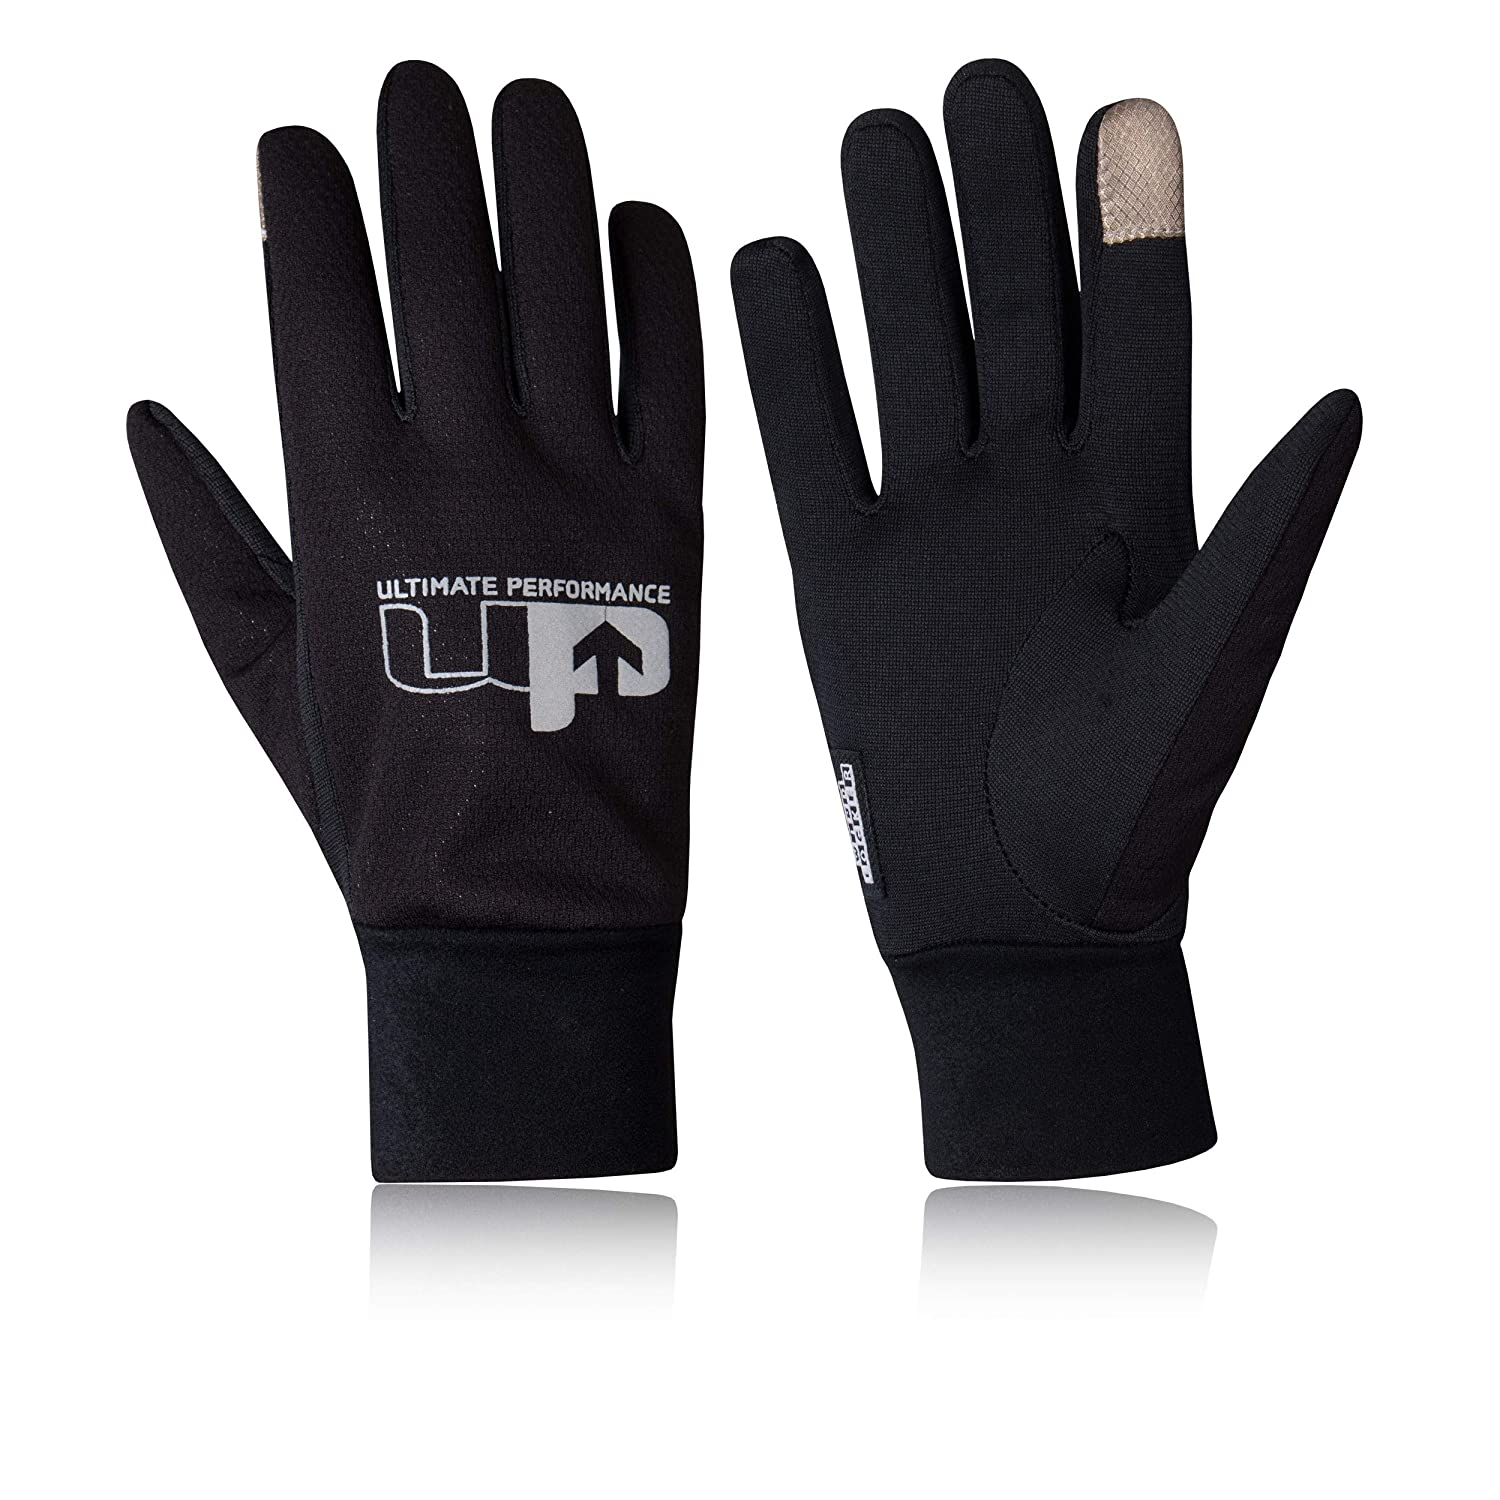 Ultimate Performance Ultimate Running Gloves - Small